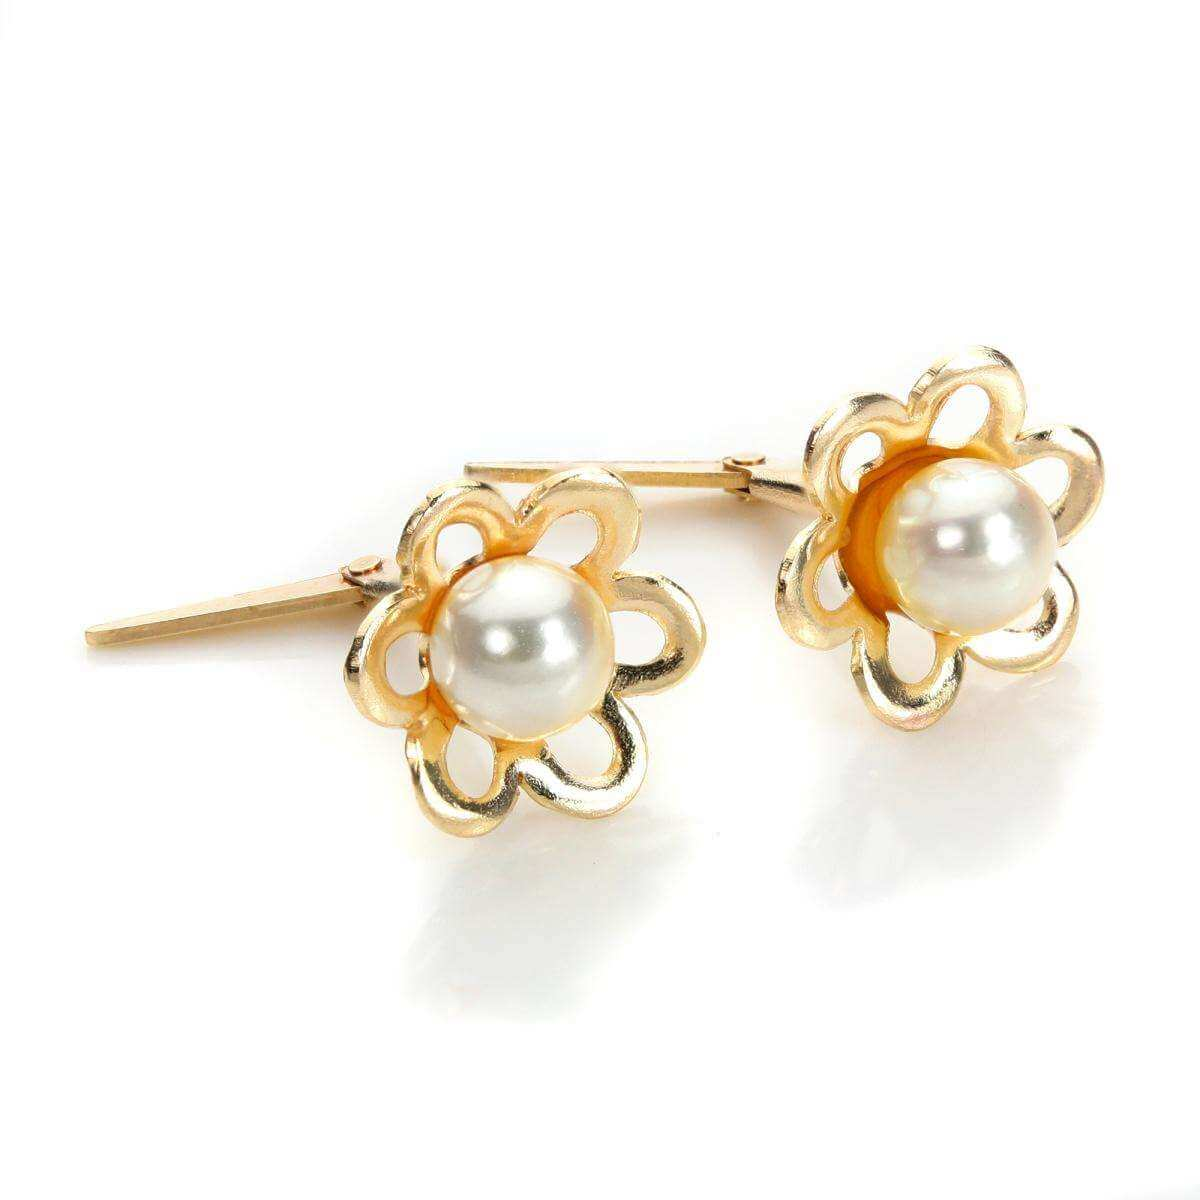 earrings clothing estore studs mariposa style stud pearl jewellery